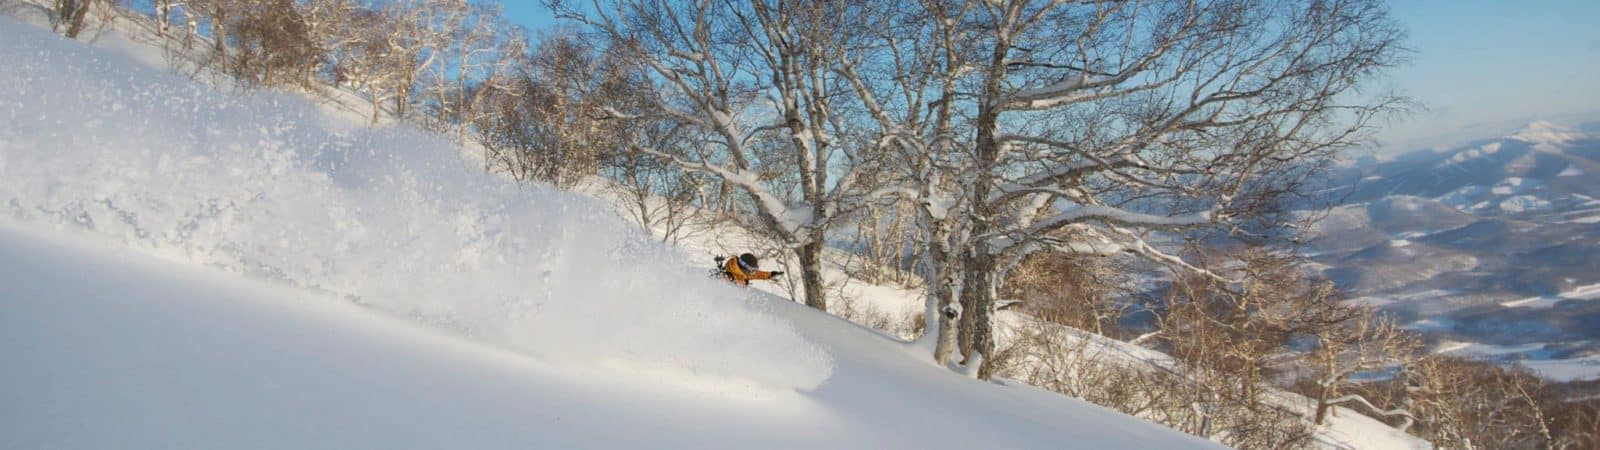 Ski touring from Niseko to Asahidake